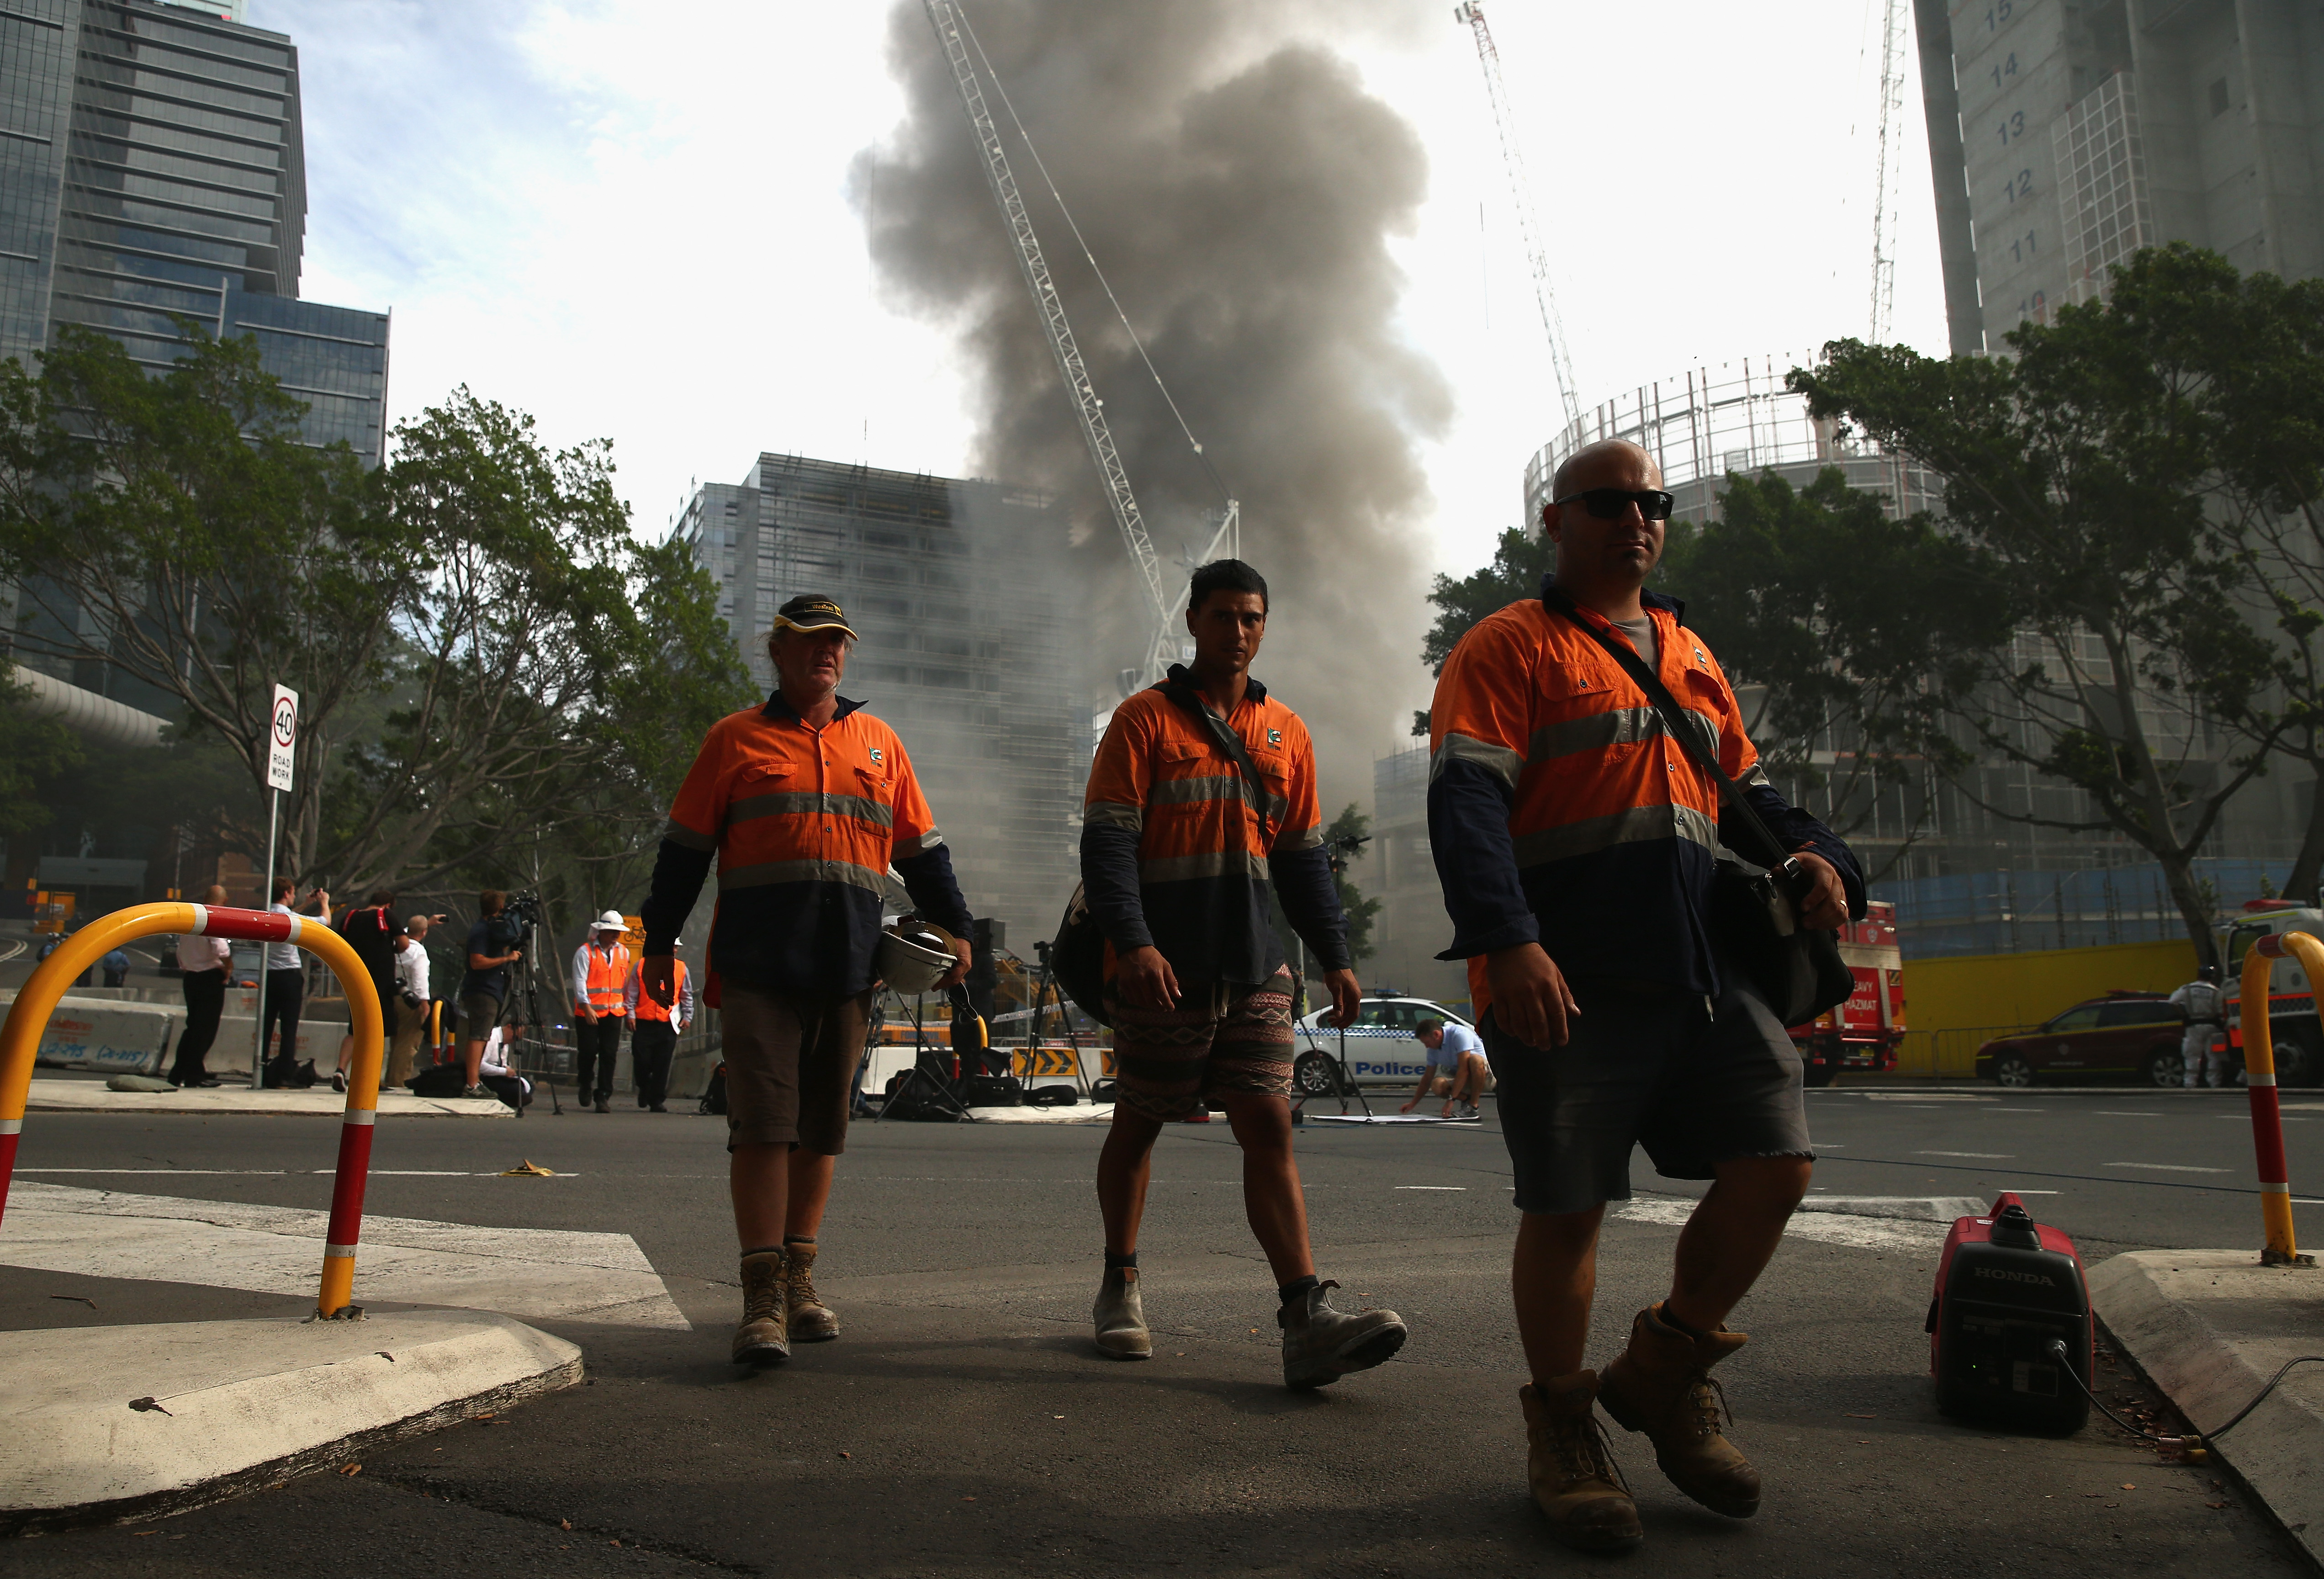 Fire 'biggest cause of losses' on construction projects in recent years